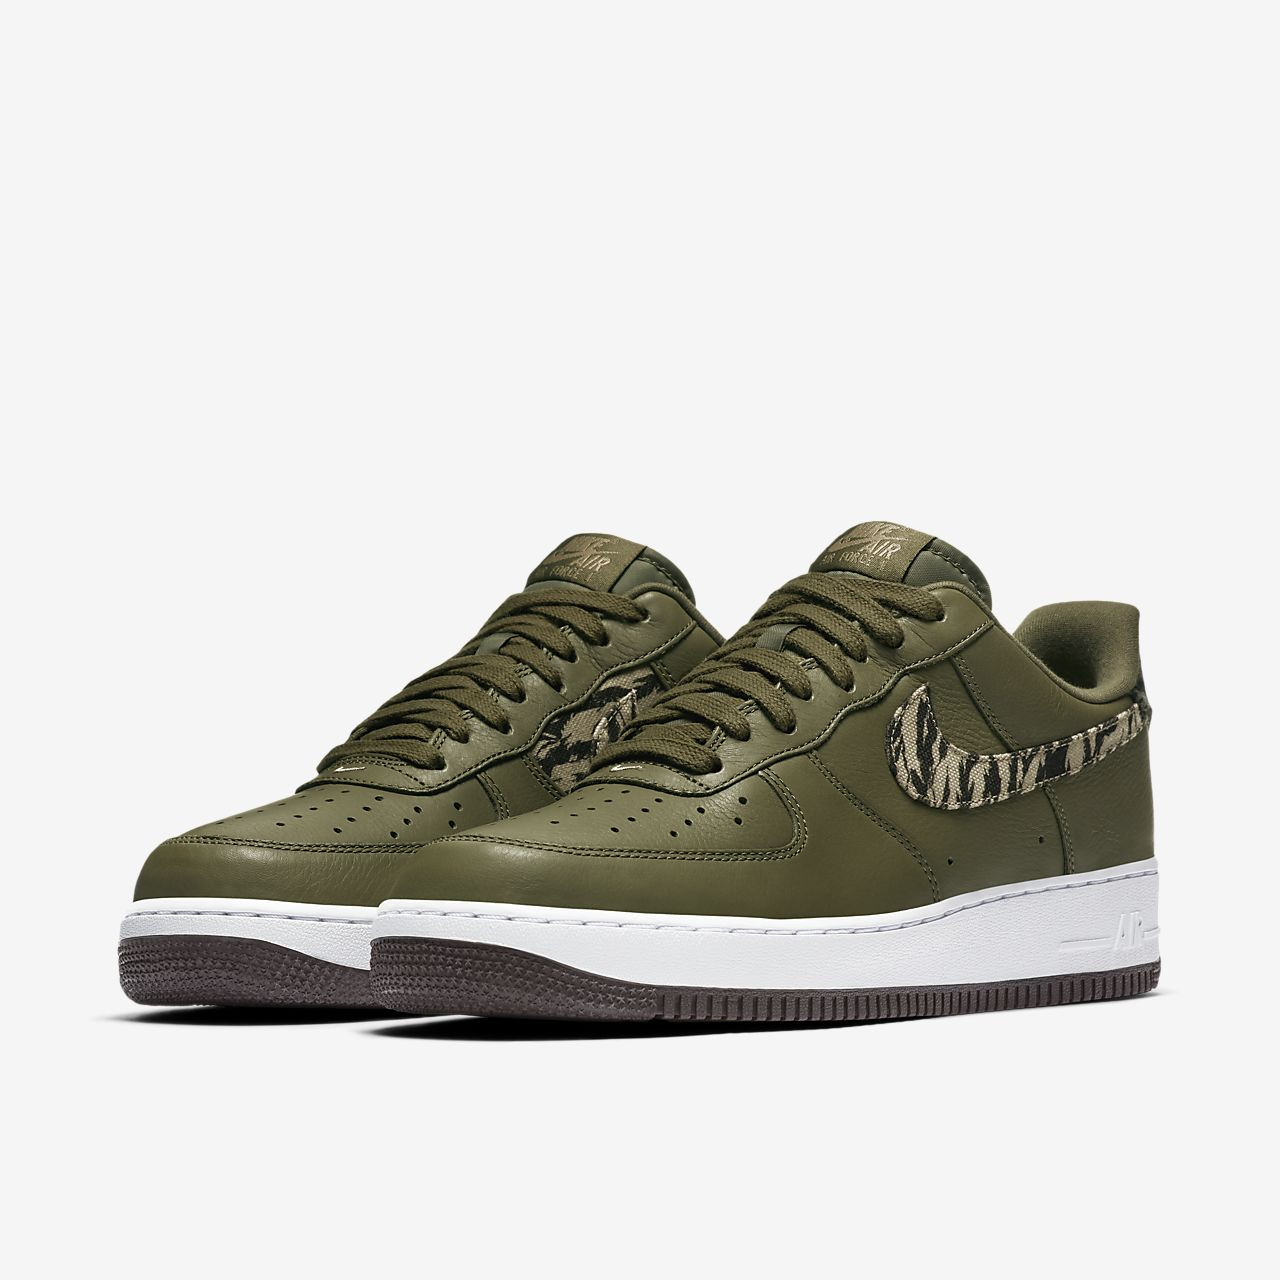 nike air force 1 low velvet nz